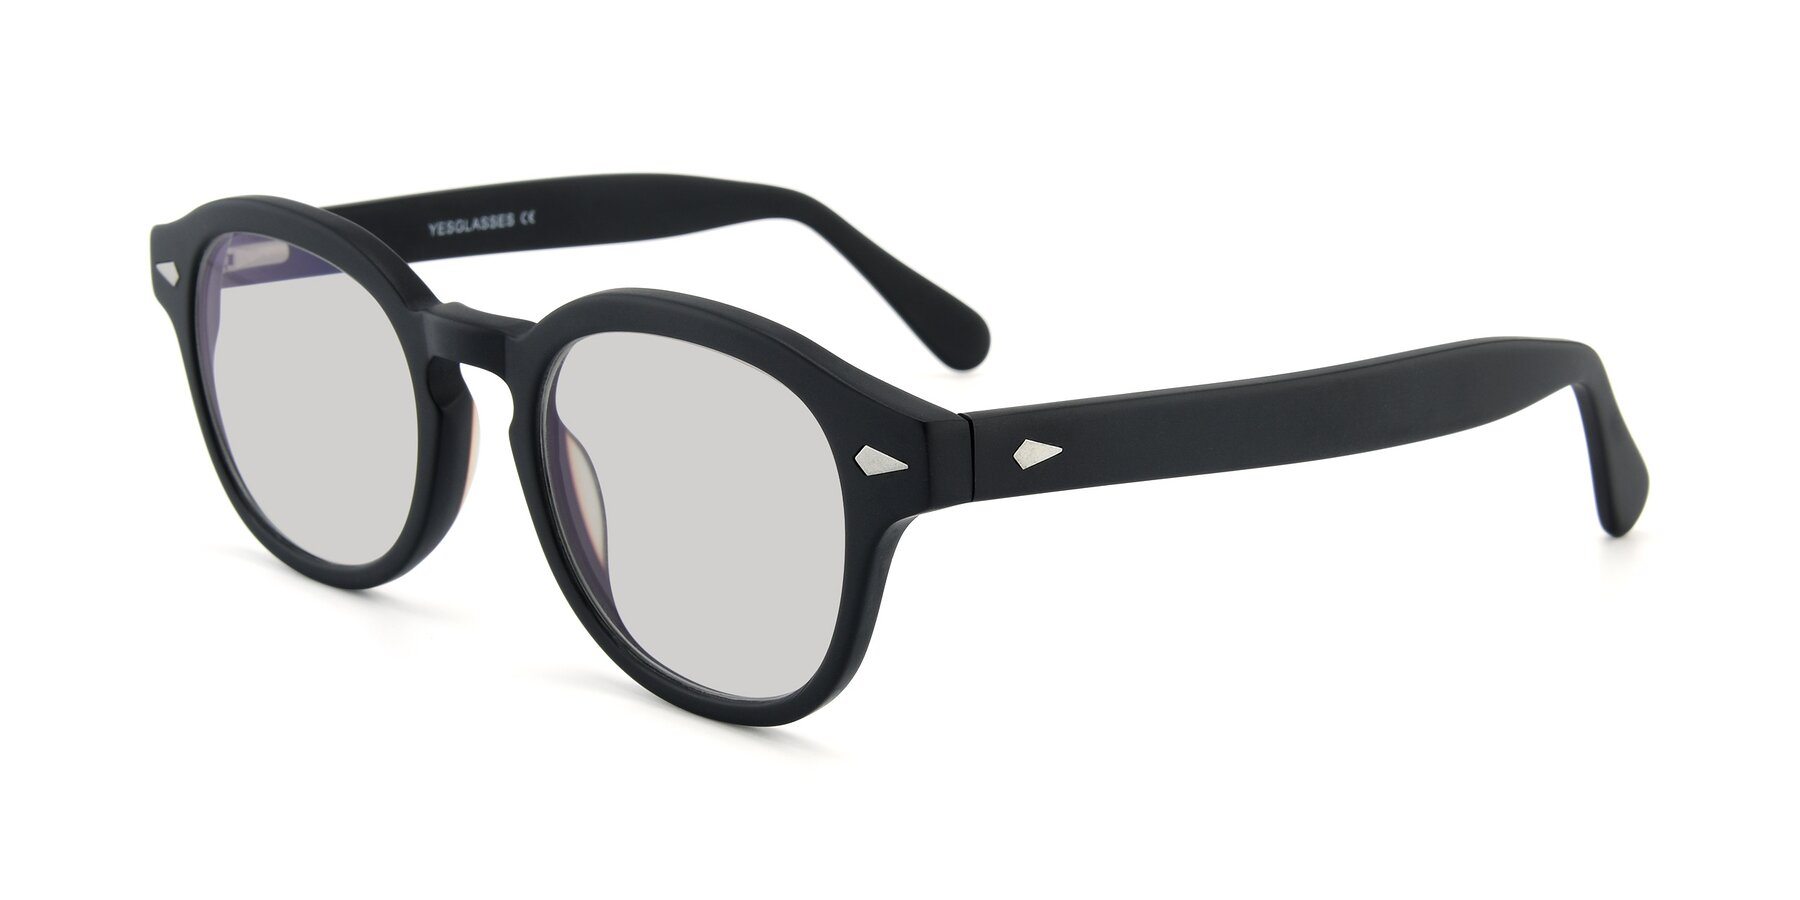 Angle of SR1609 in Matte Black with Light Gray Tinted Lenses